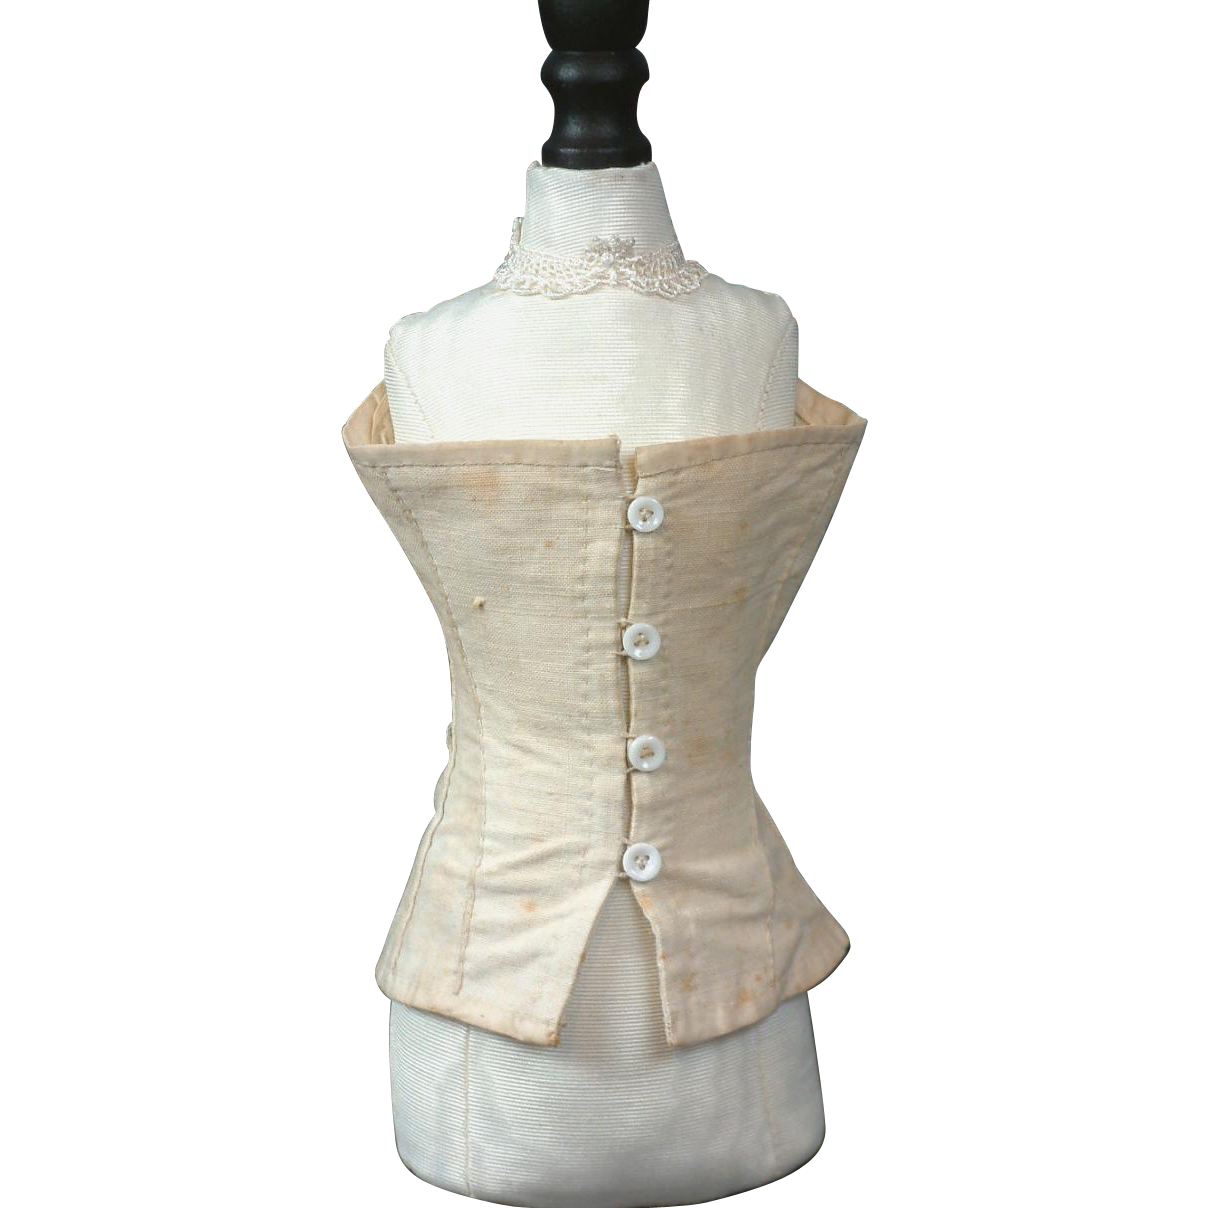 Wonderful Rare Button Closure Corset with 12 Grommets For French Fashion Doll C. 1880